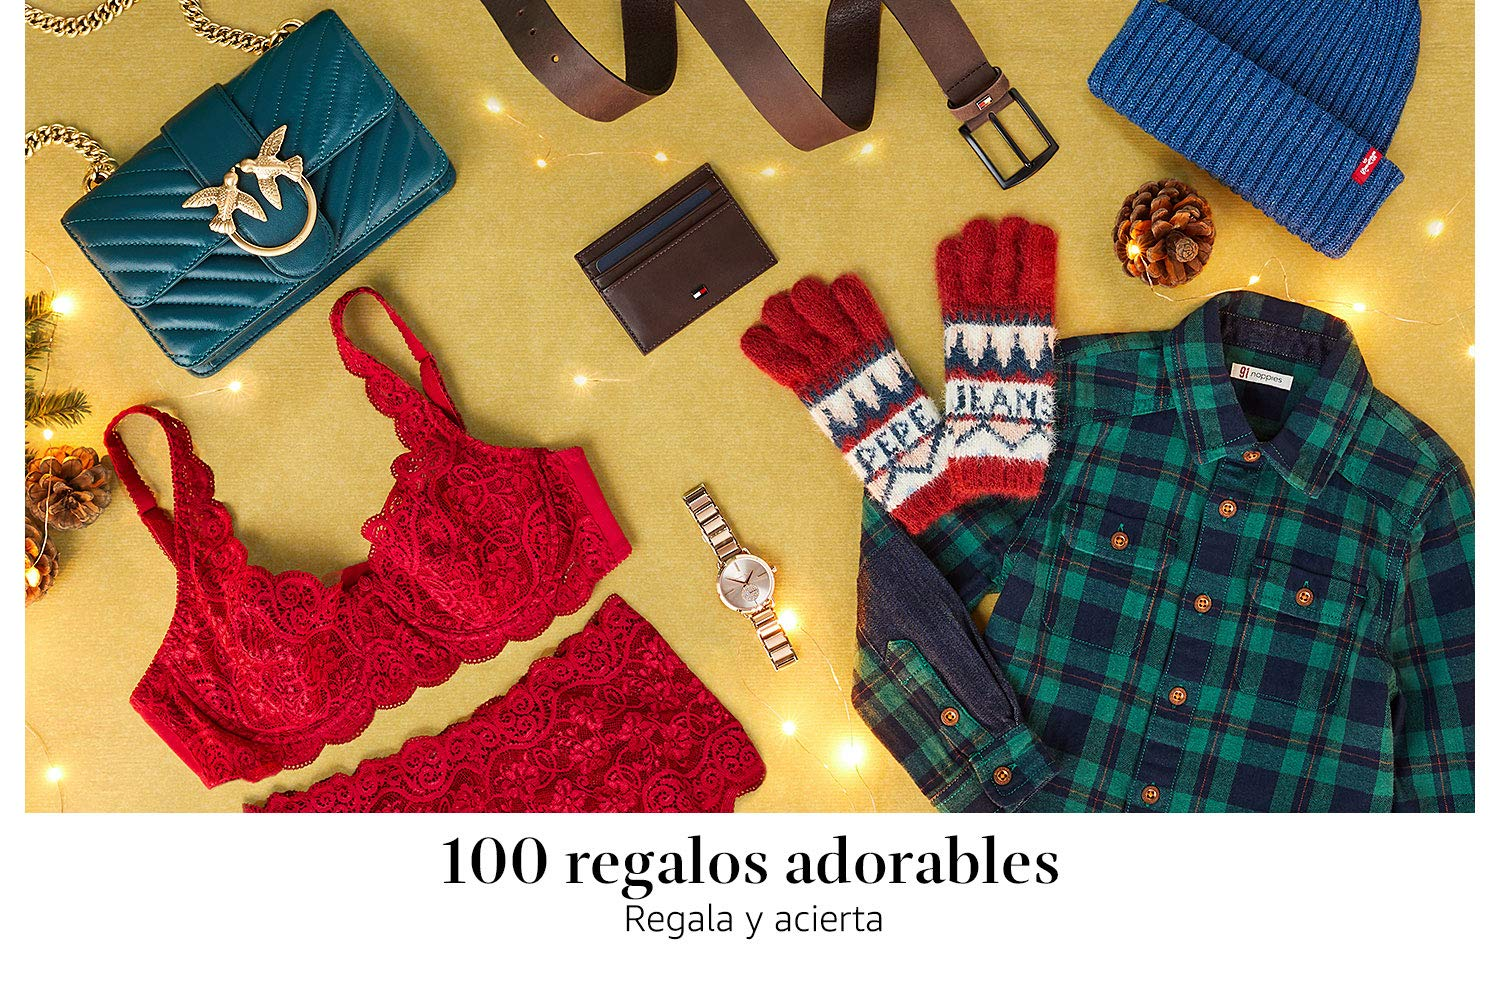 100 regalos adorables